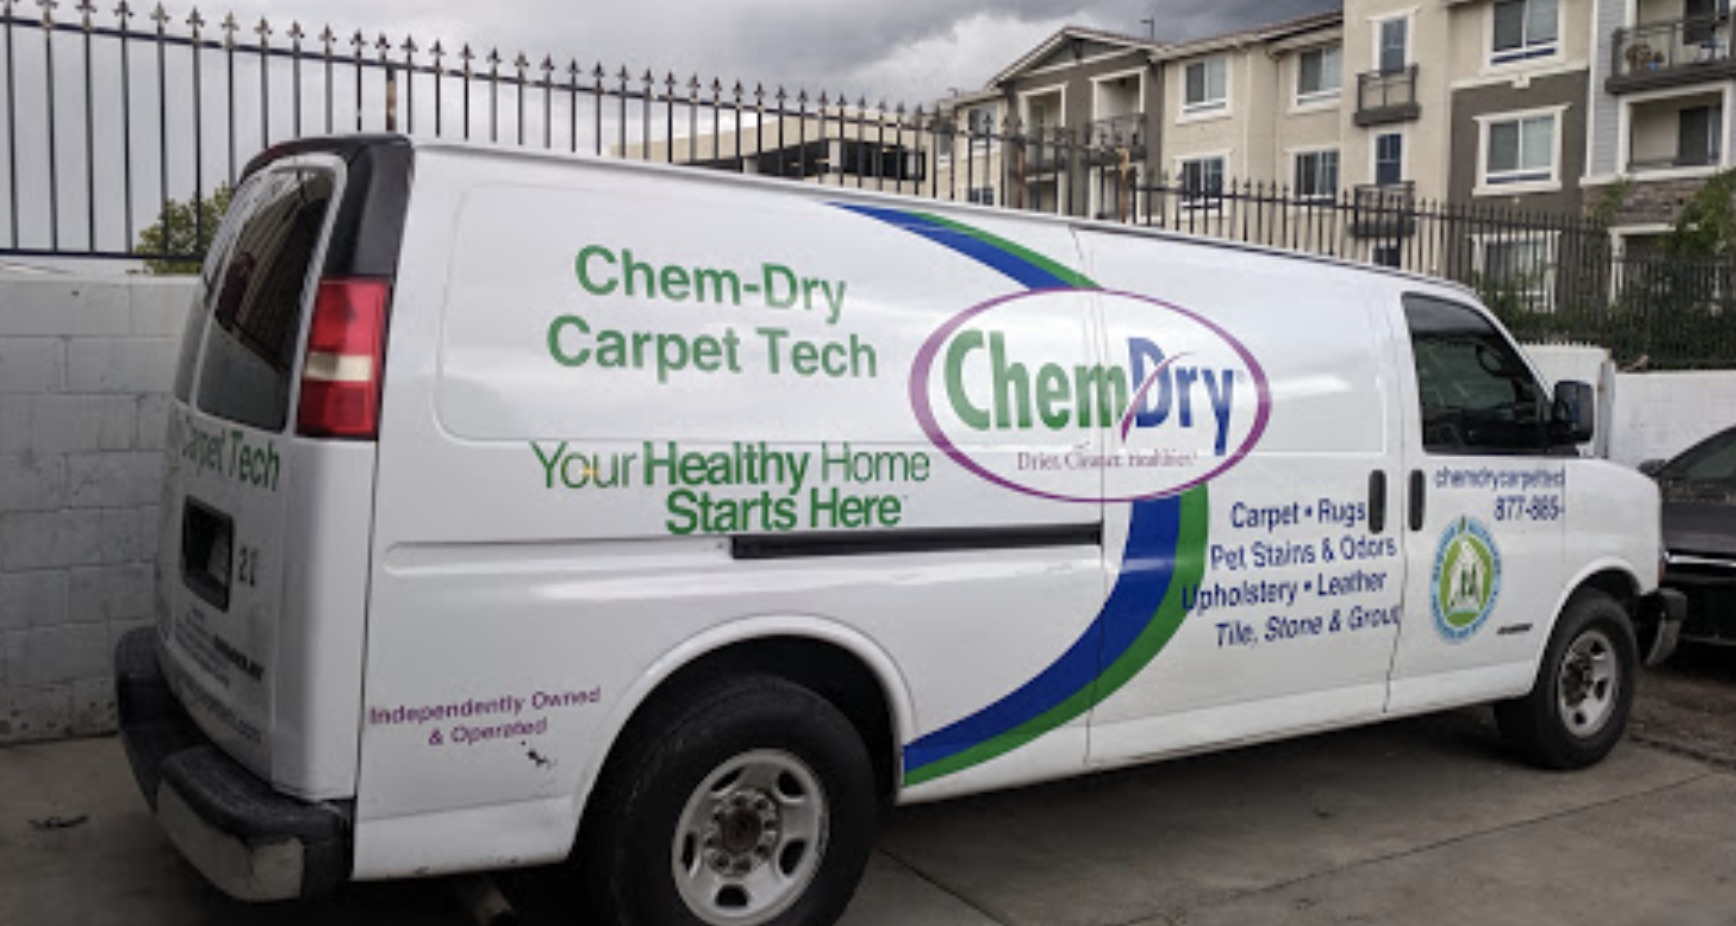 chem-dry carpet tech van